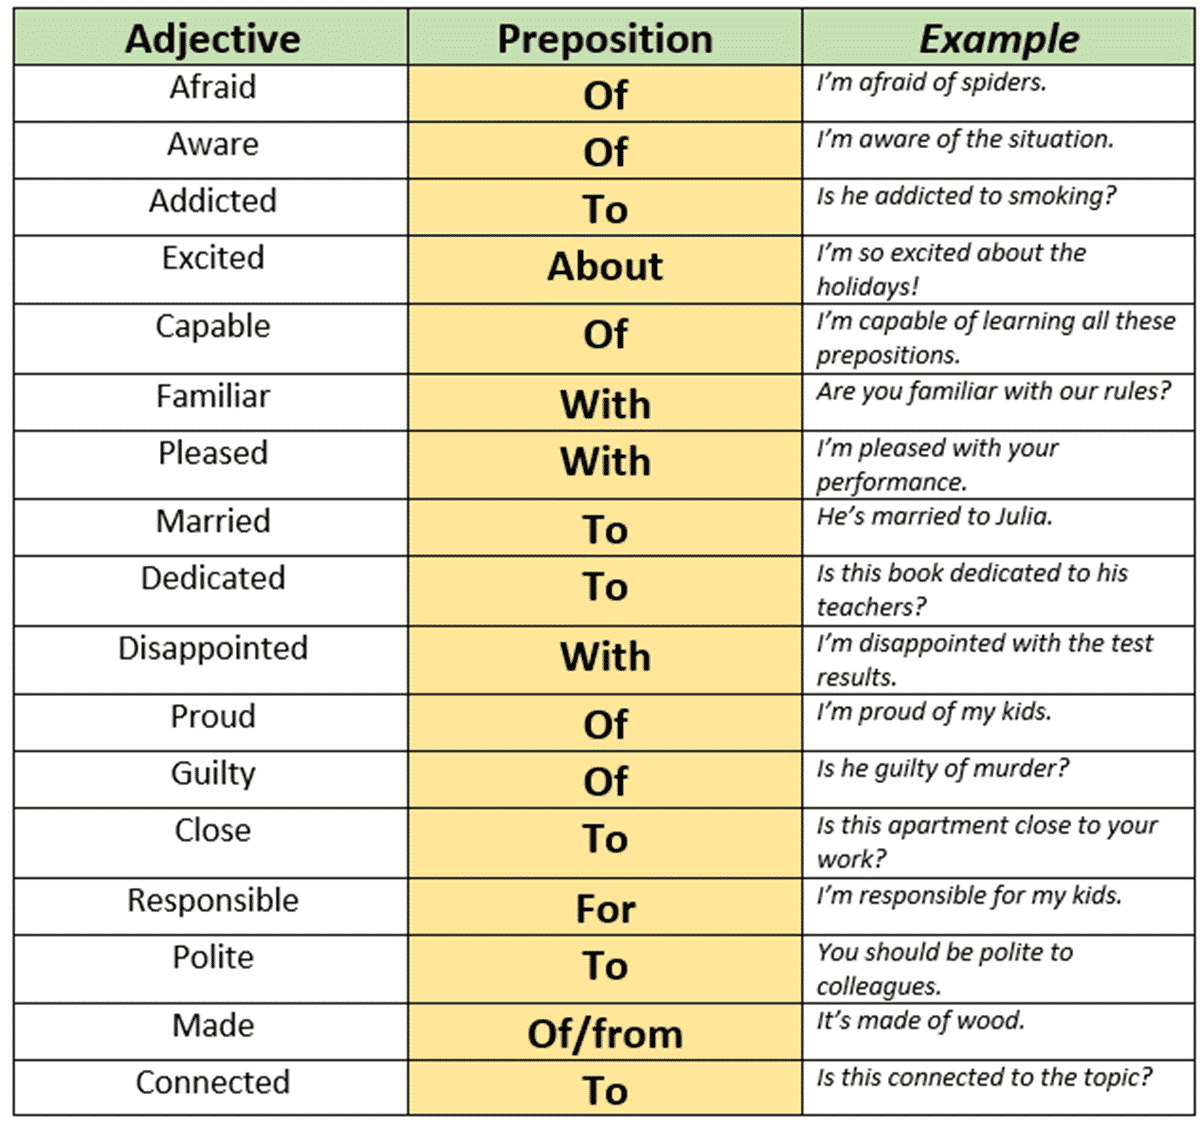 Prepositions and Adjectives